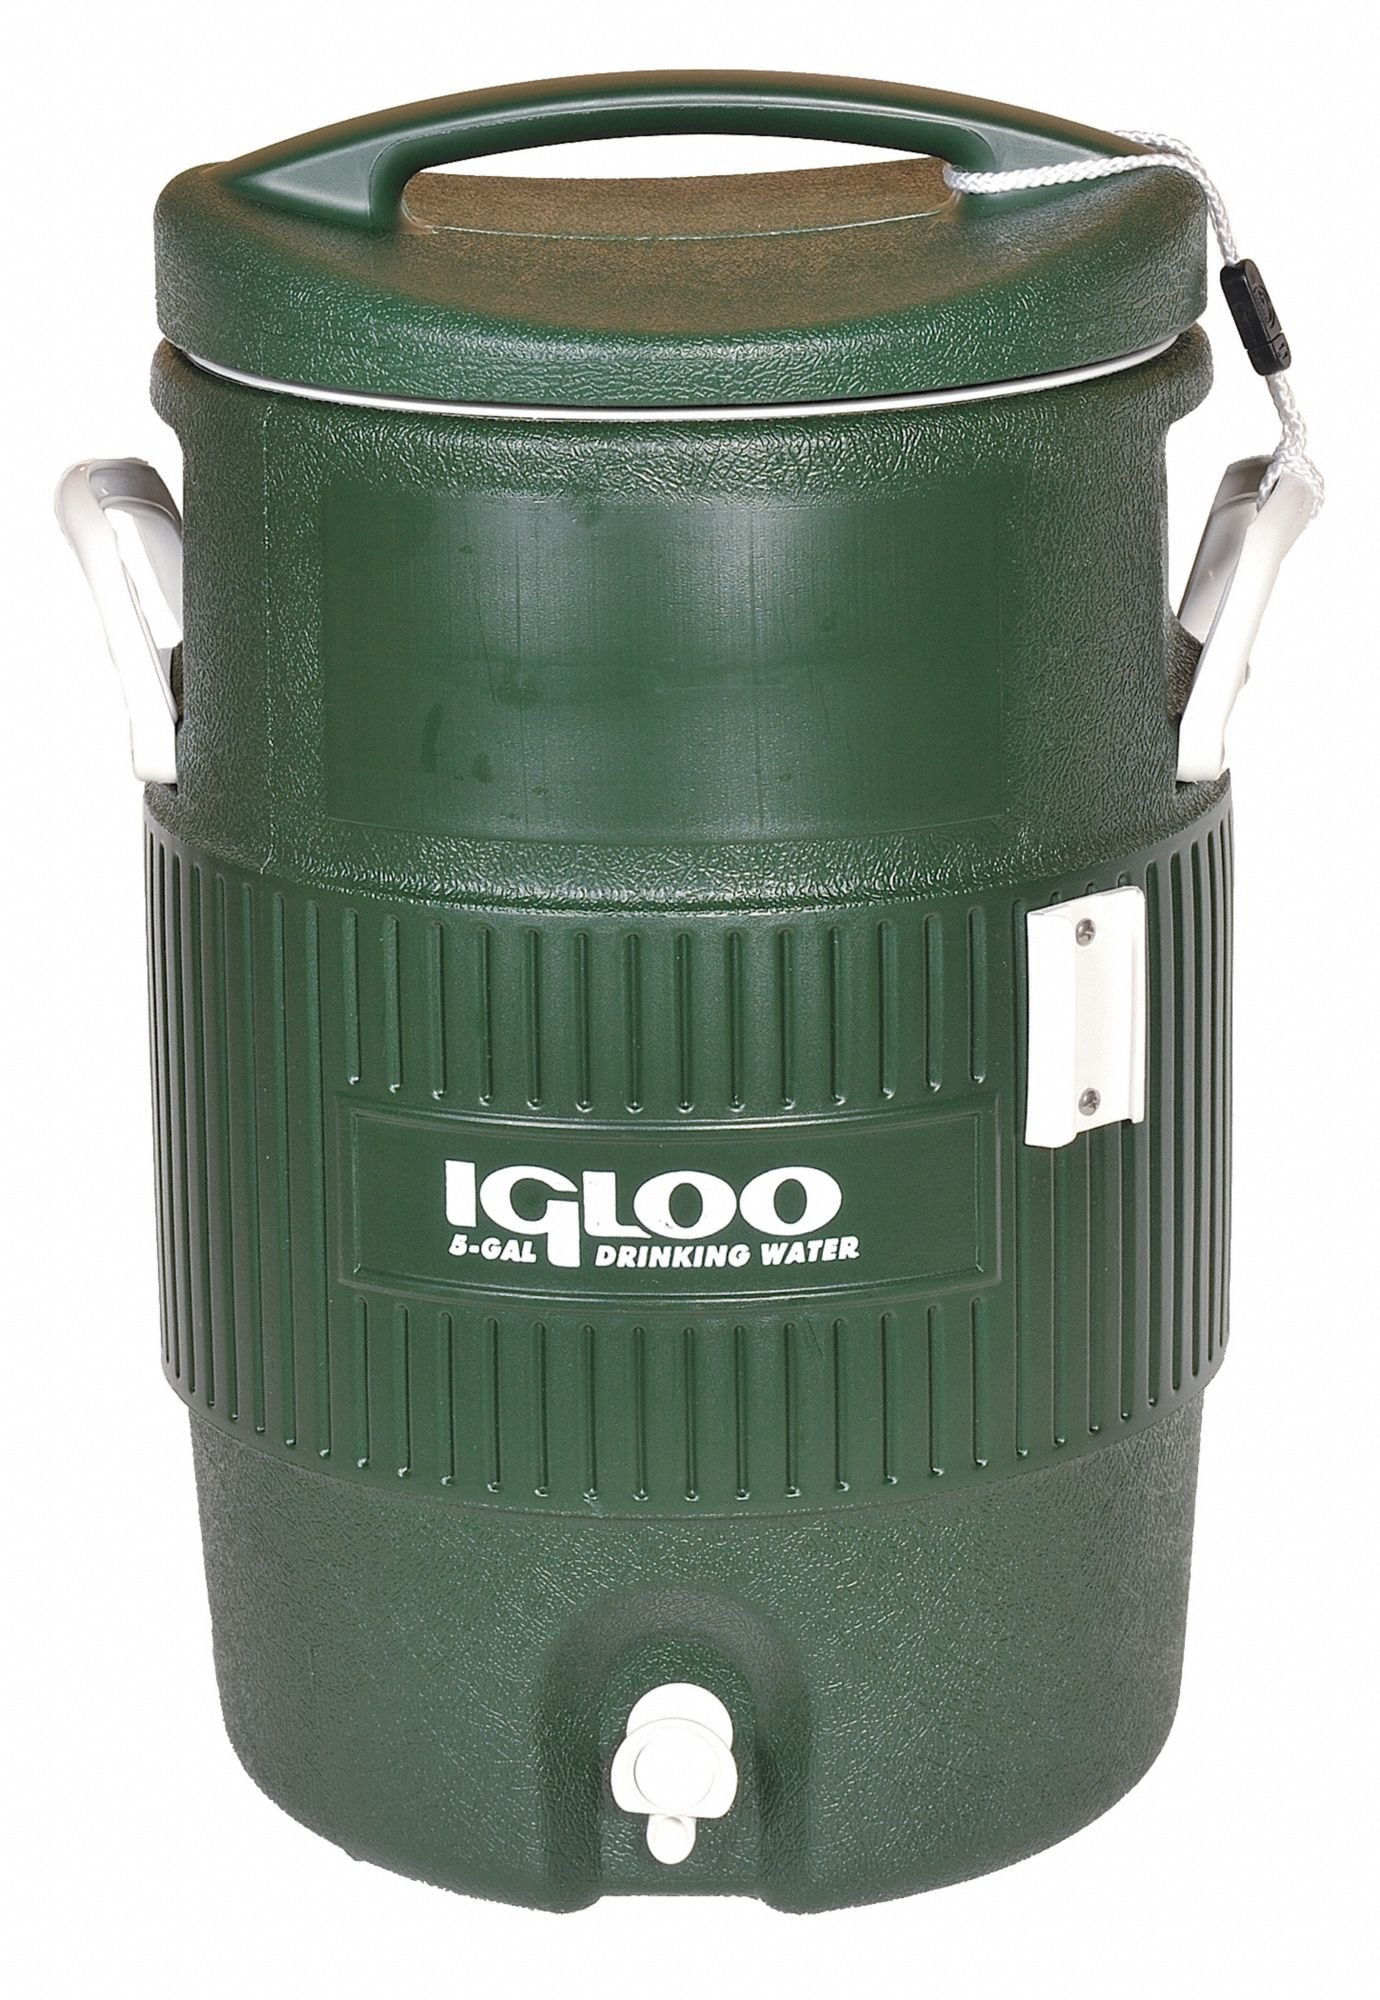 Igloo Coolers - 5 Gallon Beverage Cooler